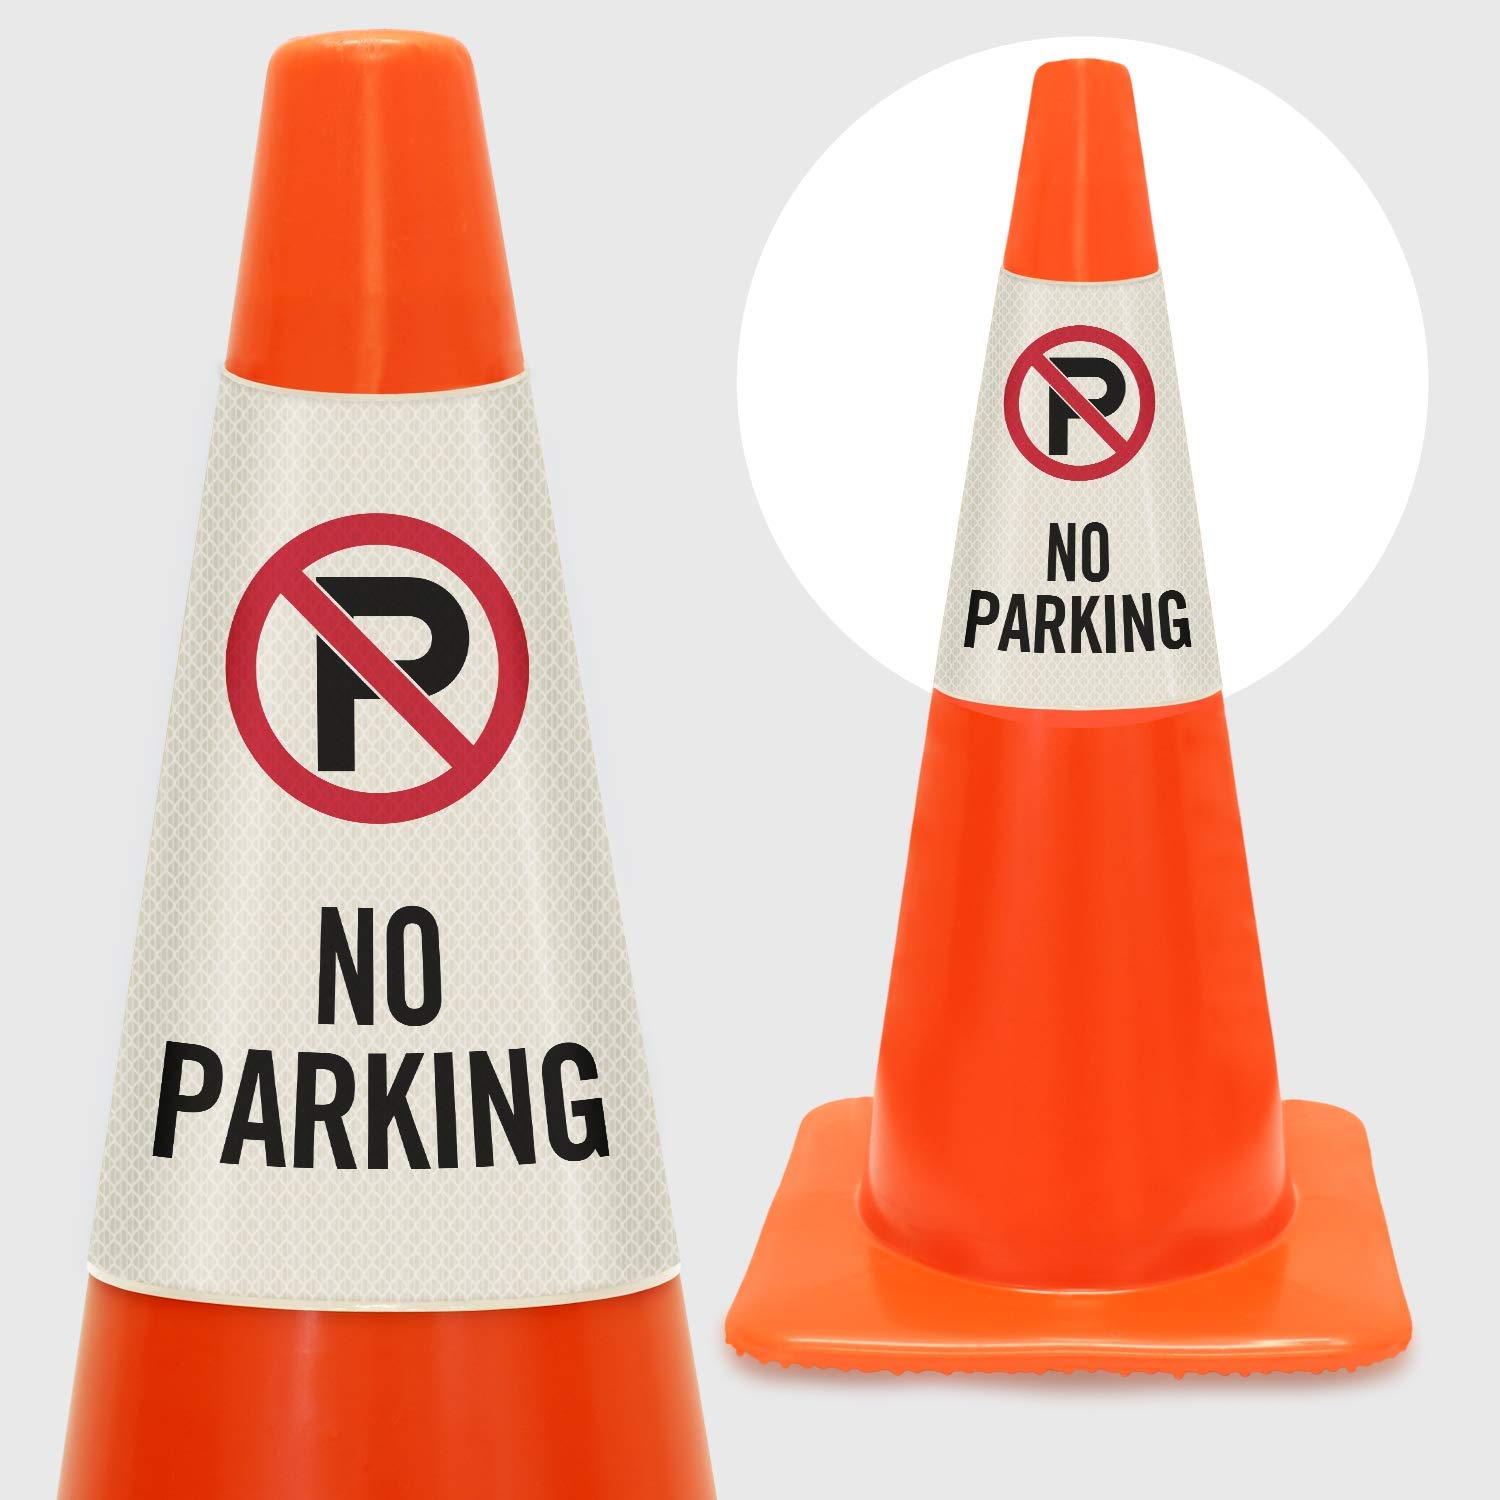 SmartSign''No Parking'' Cone Message Sleeve, Bright Easy-to-Read, Vertical Shape | Reflective Vinyl by SmartSign